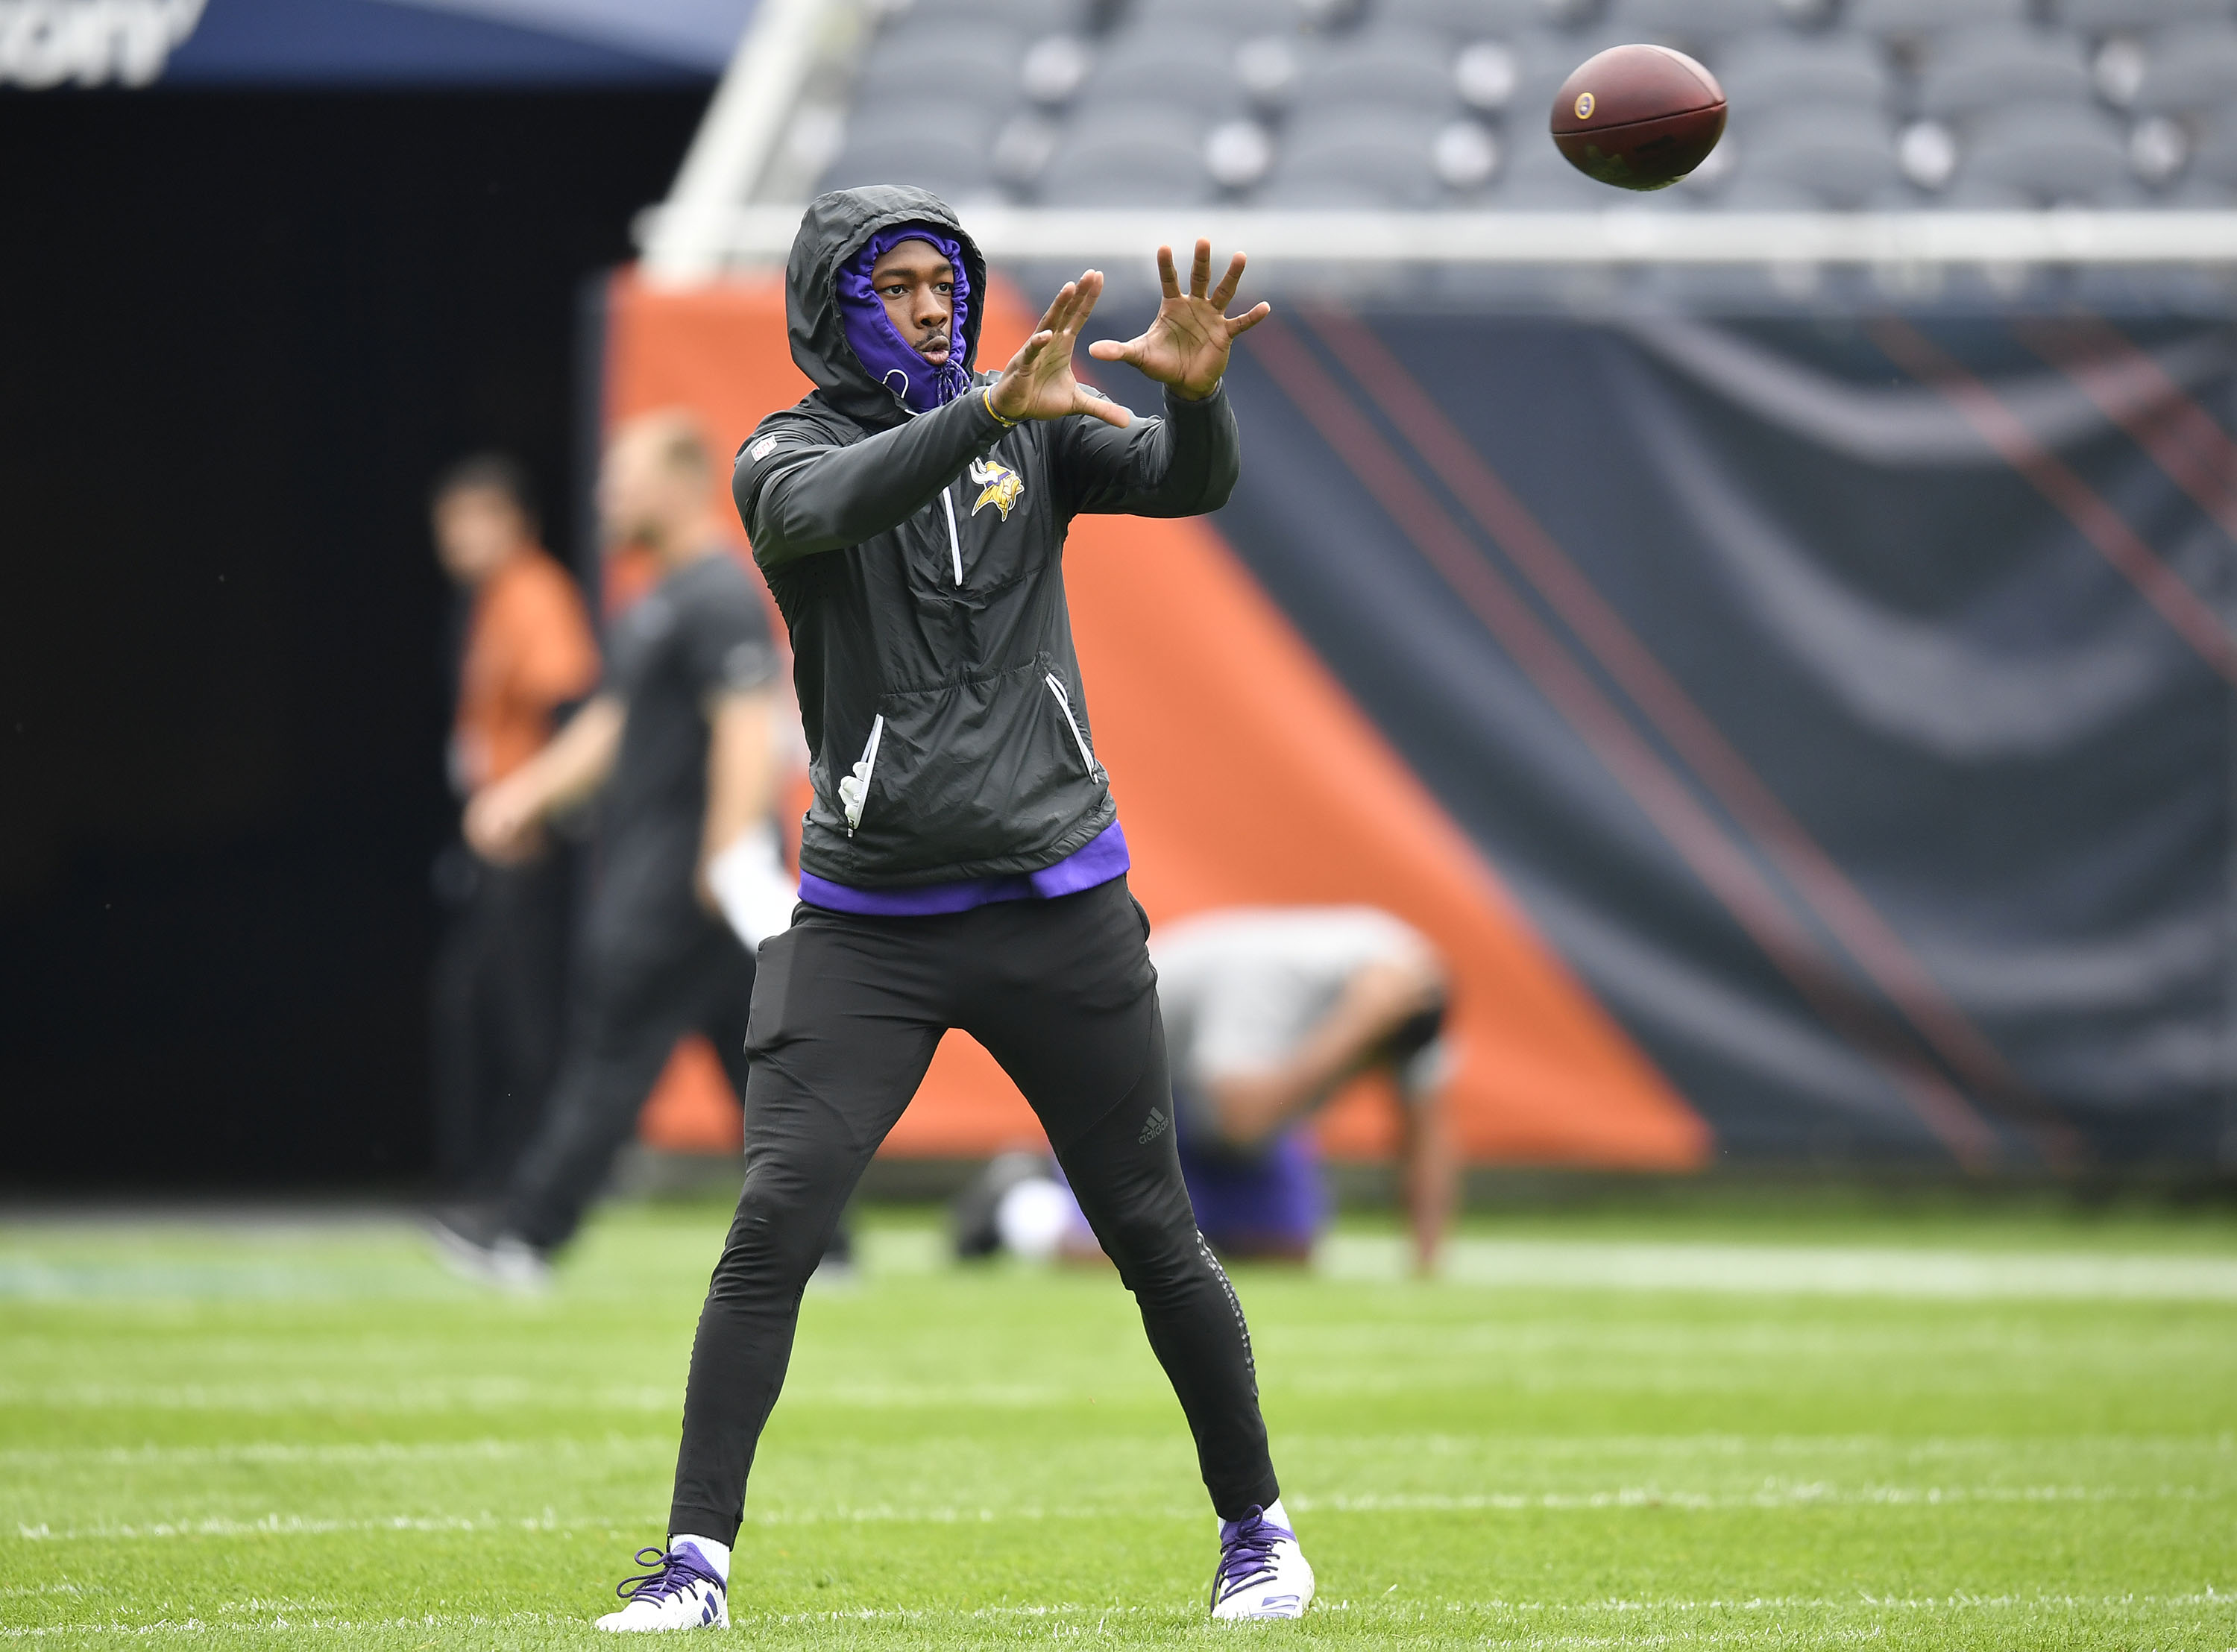 Stefon Diggs sparks Vikings trade rumors after odd Twitter post, missed practice